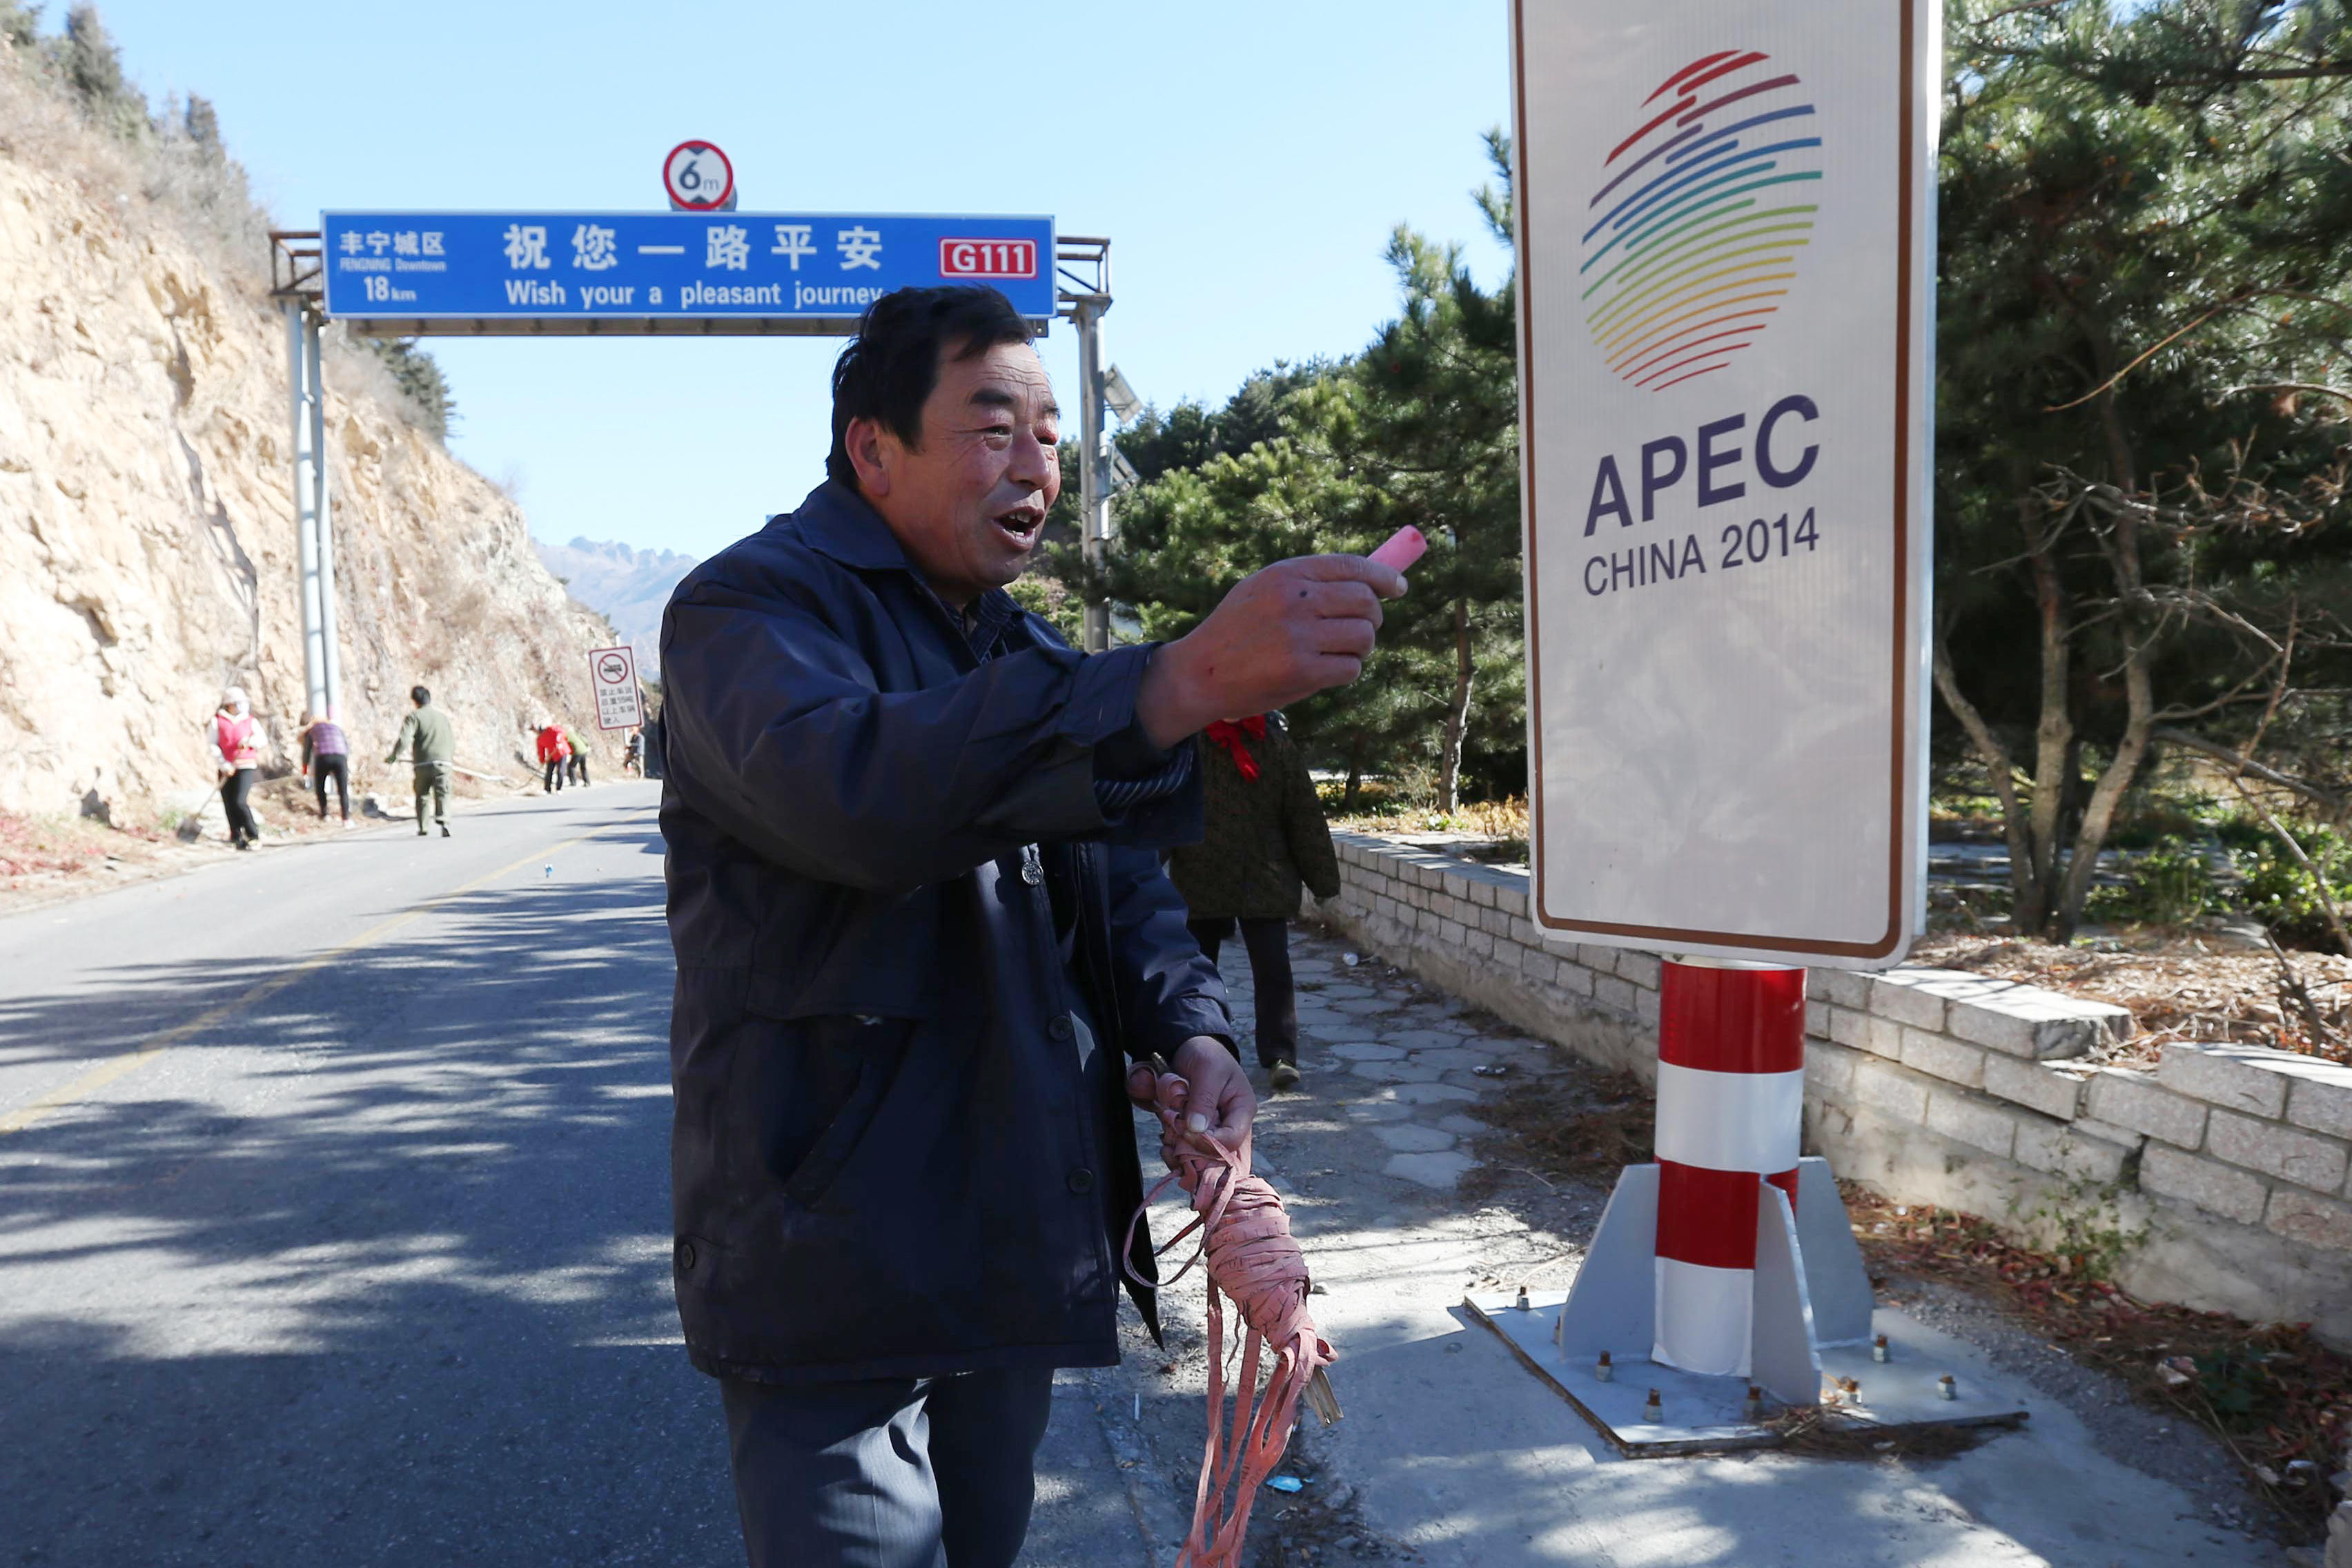 Villagers from Xiangmaoshan village in Huairou district clean the roadside before the APEC summit begins in Beijing, October 26, 2014 (AFP Photo/)